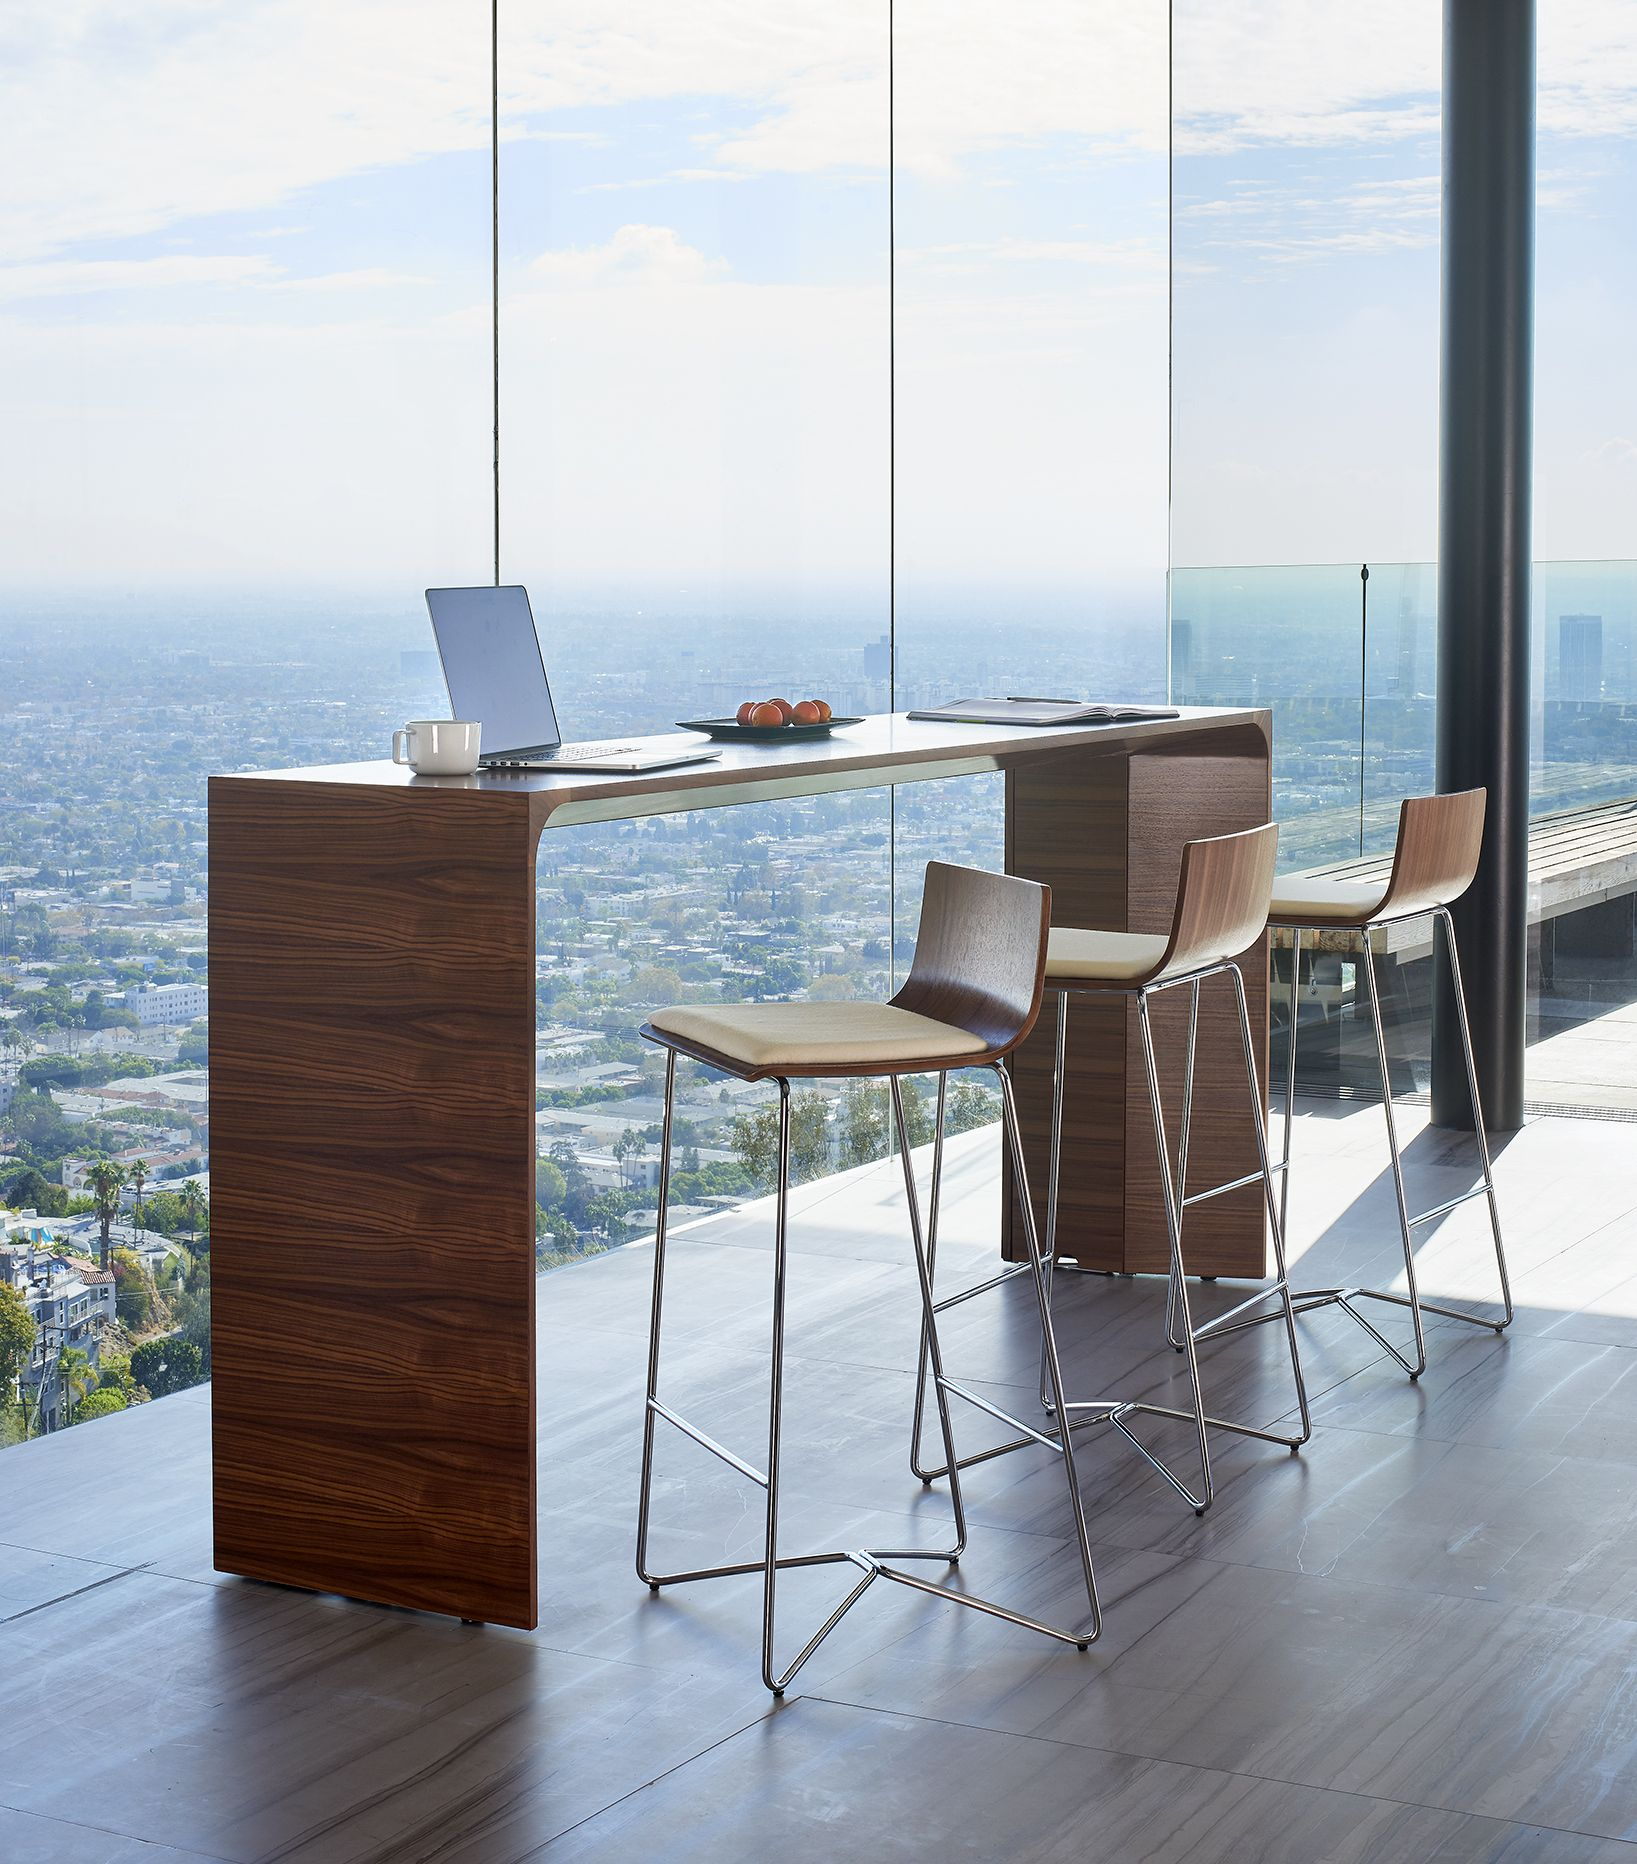 Officeworks Stools Contemporary Office Design Inspiration Brink Stools By